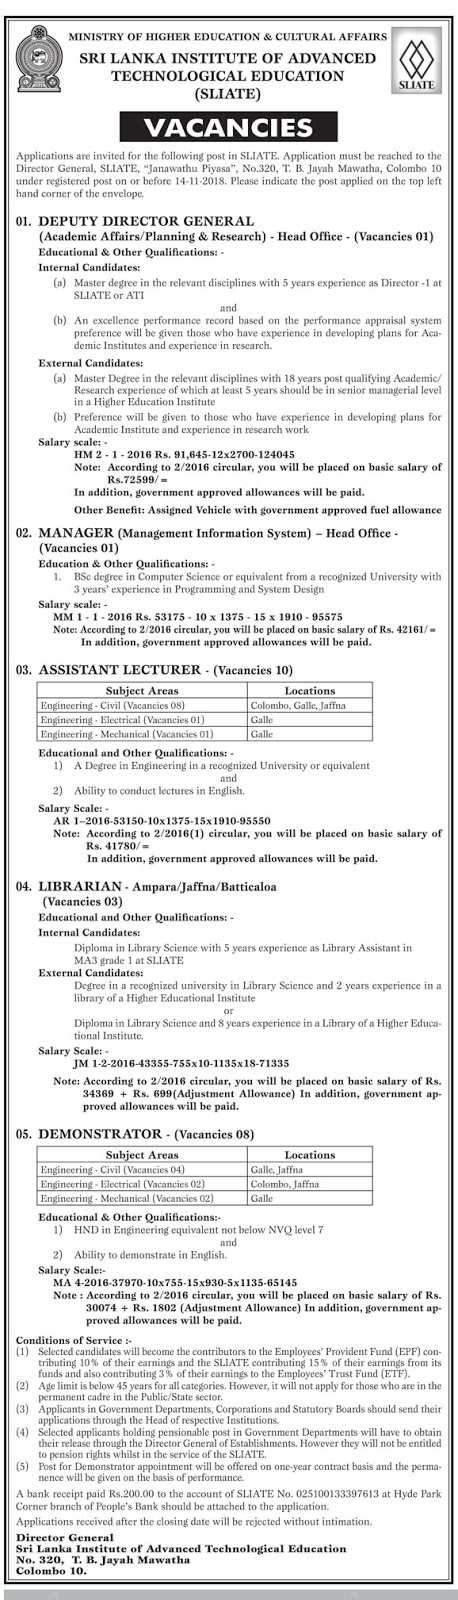 Vacancies at Sri Lanka Institute of Advanced Technological Education